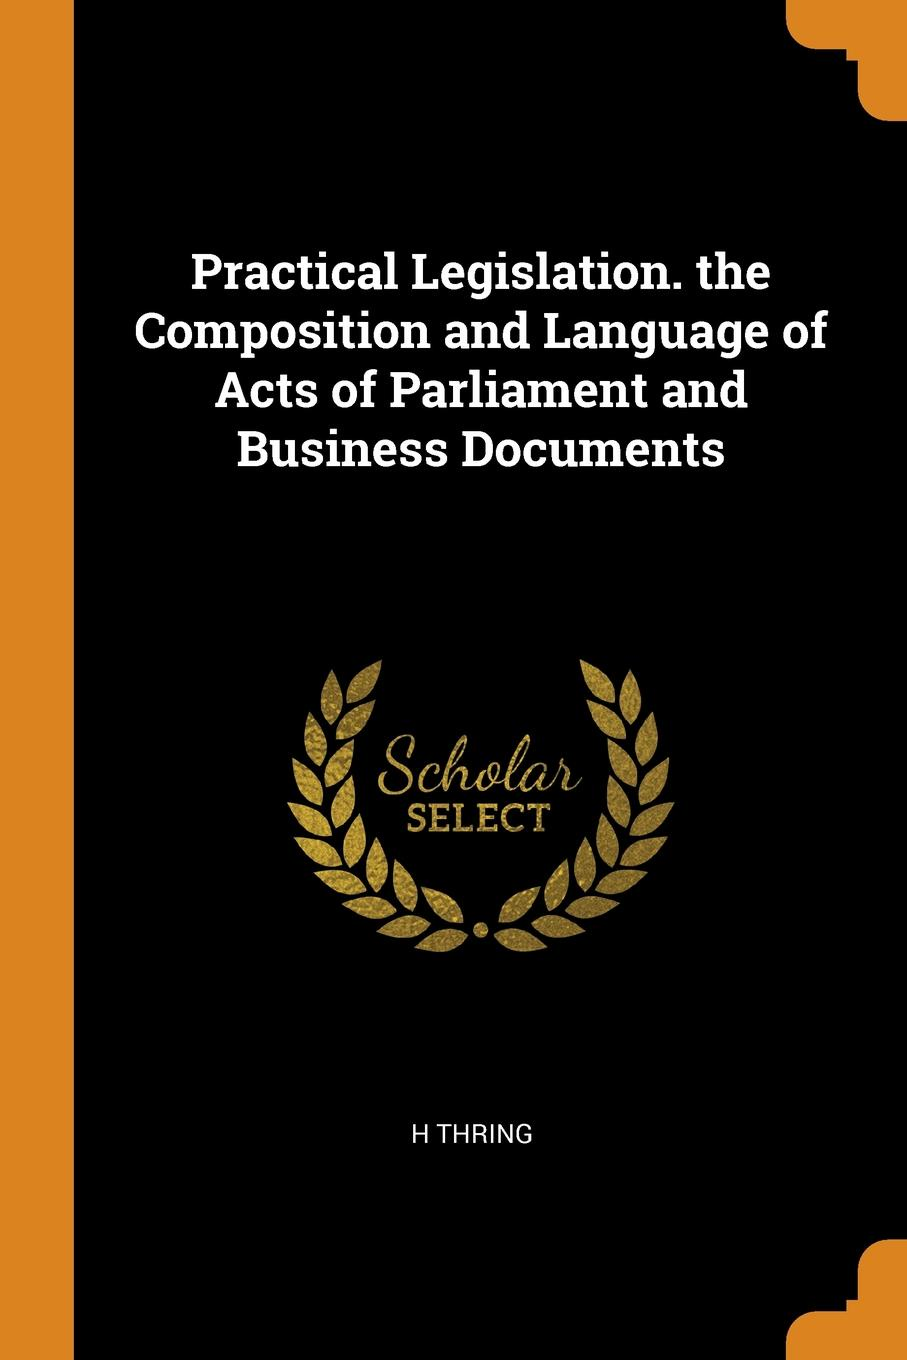 Practical Legislation. the Composition and Language of Acts of Parliament and Business Documents. H THRING